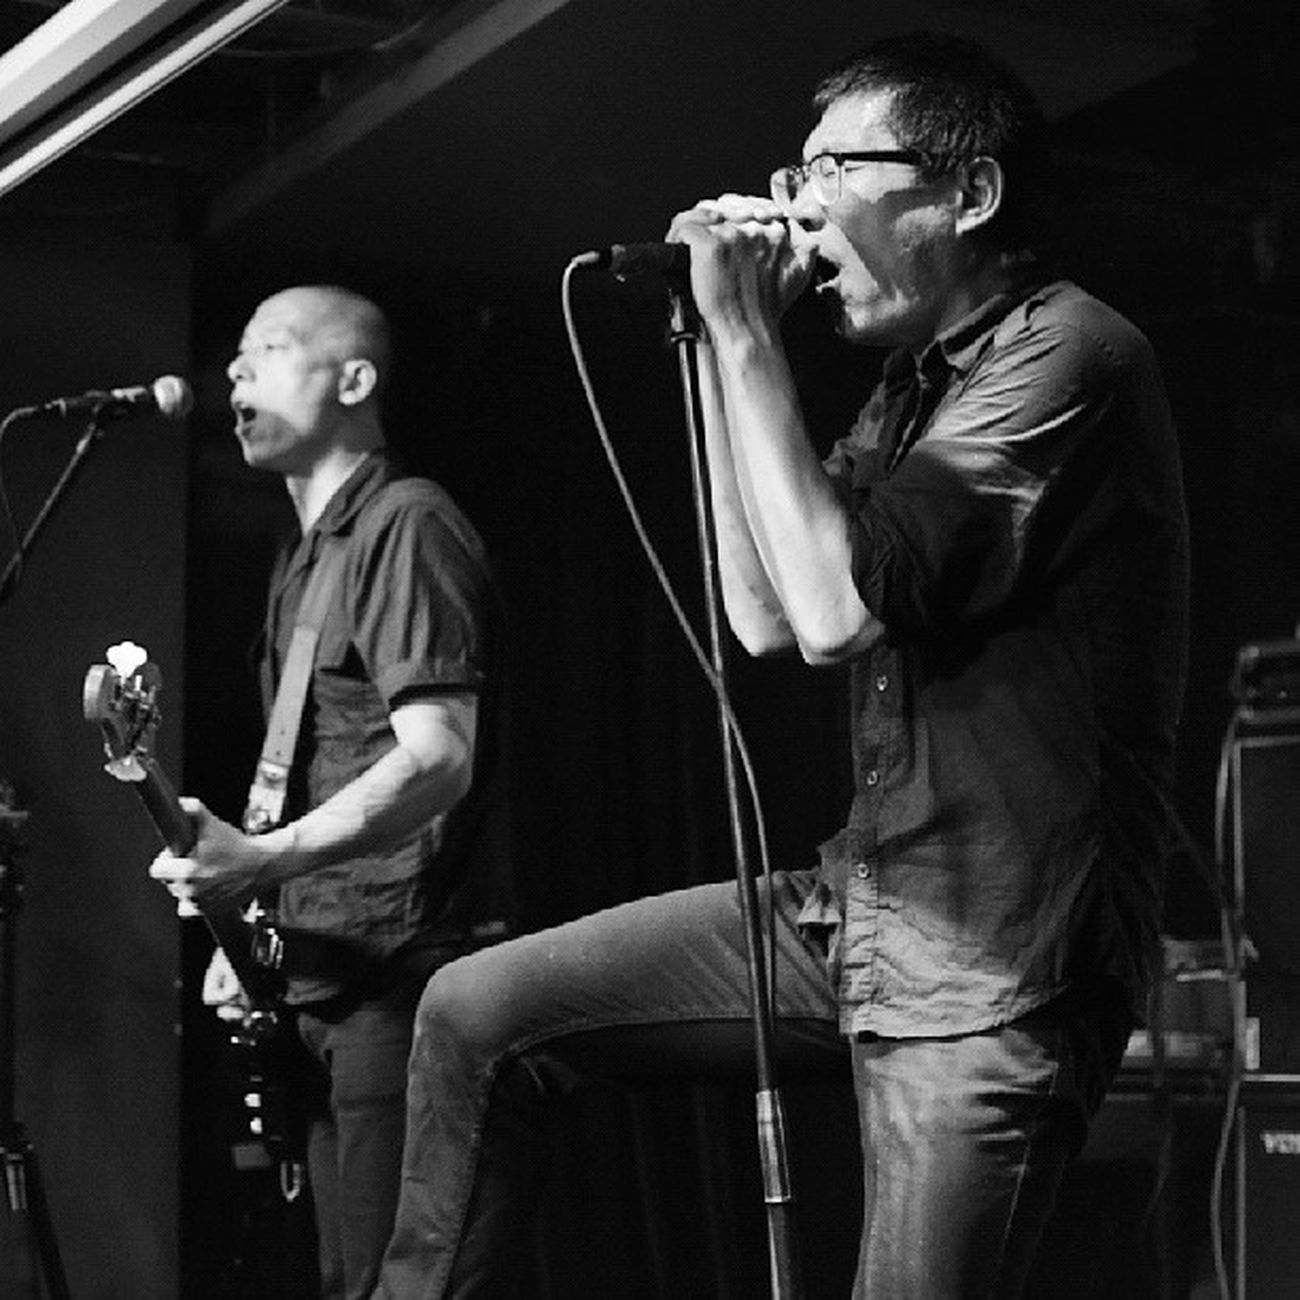 Another from the PK14 gig Dalian LiveMusic Rock